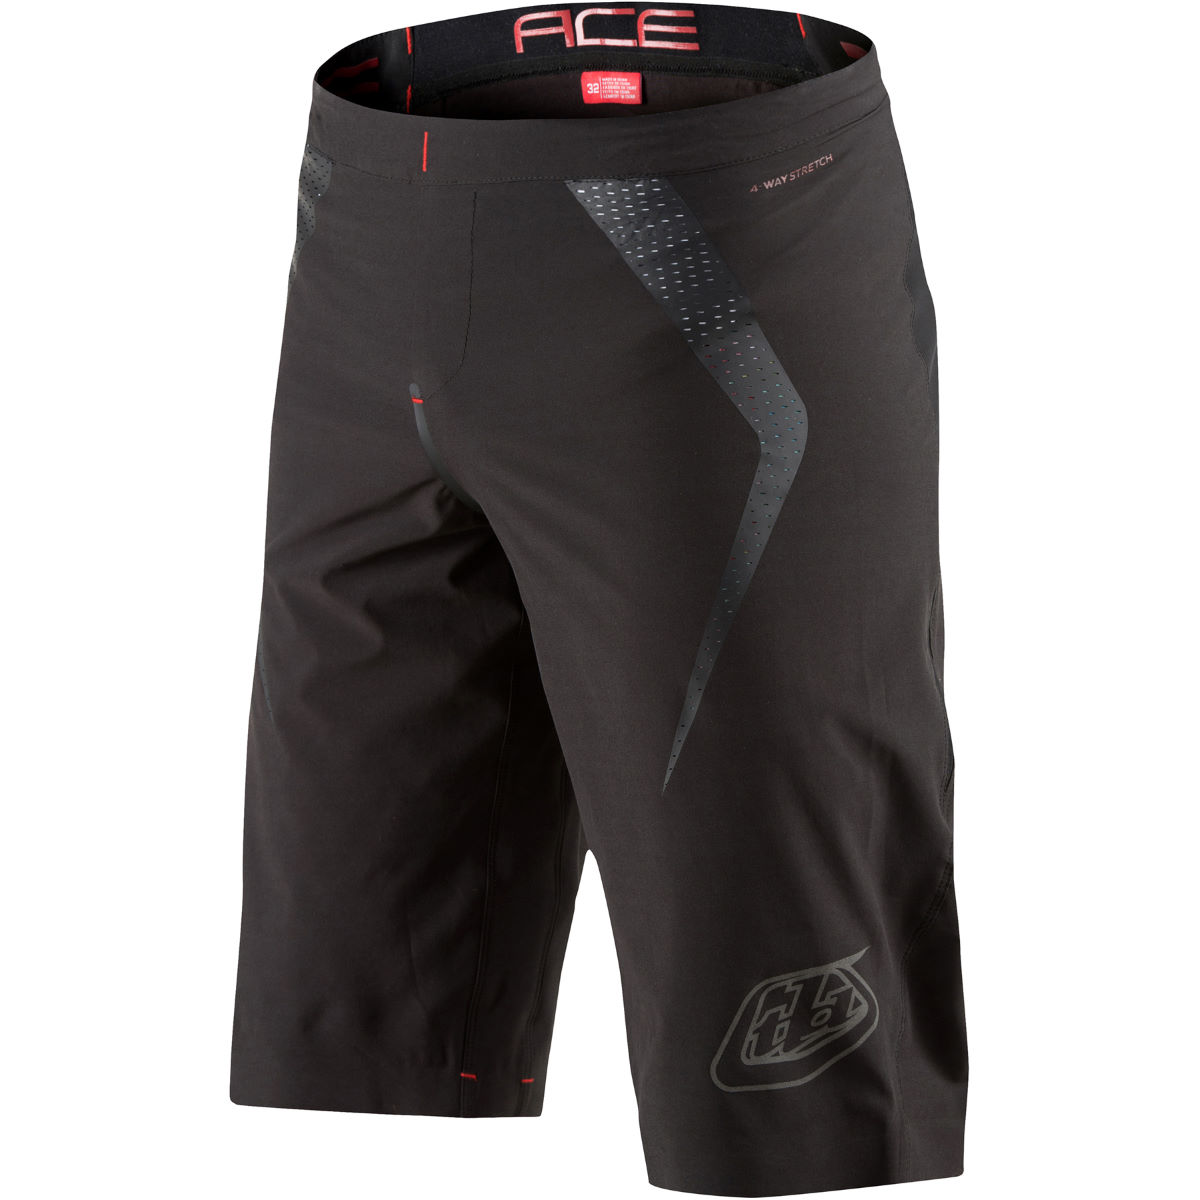 Short Troy Lee Designs Ace 2.0 - 30 Noir Shorts VTT